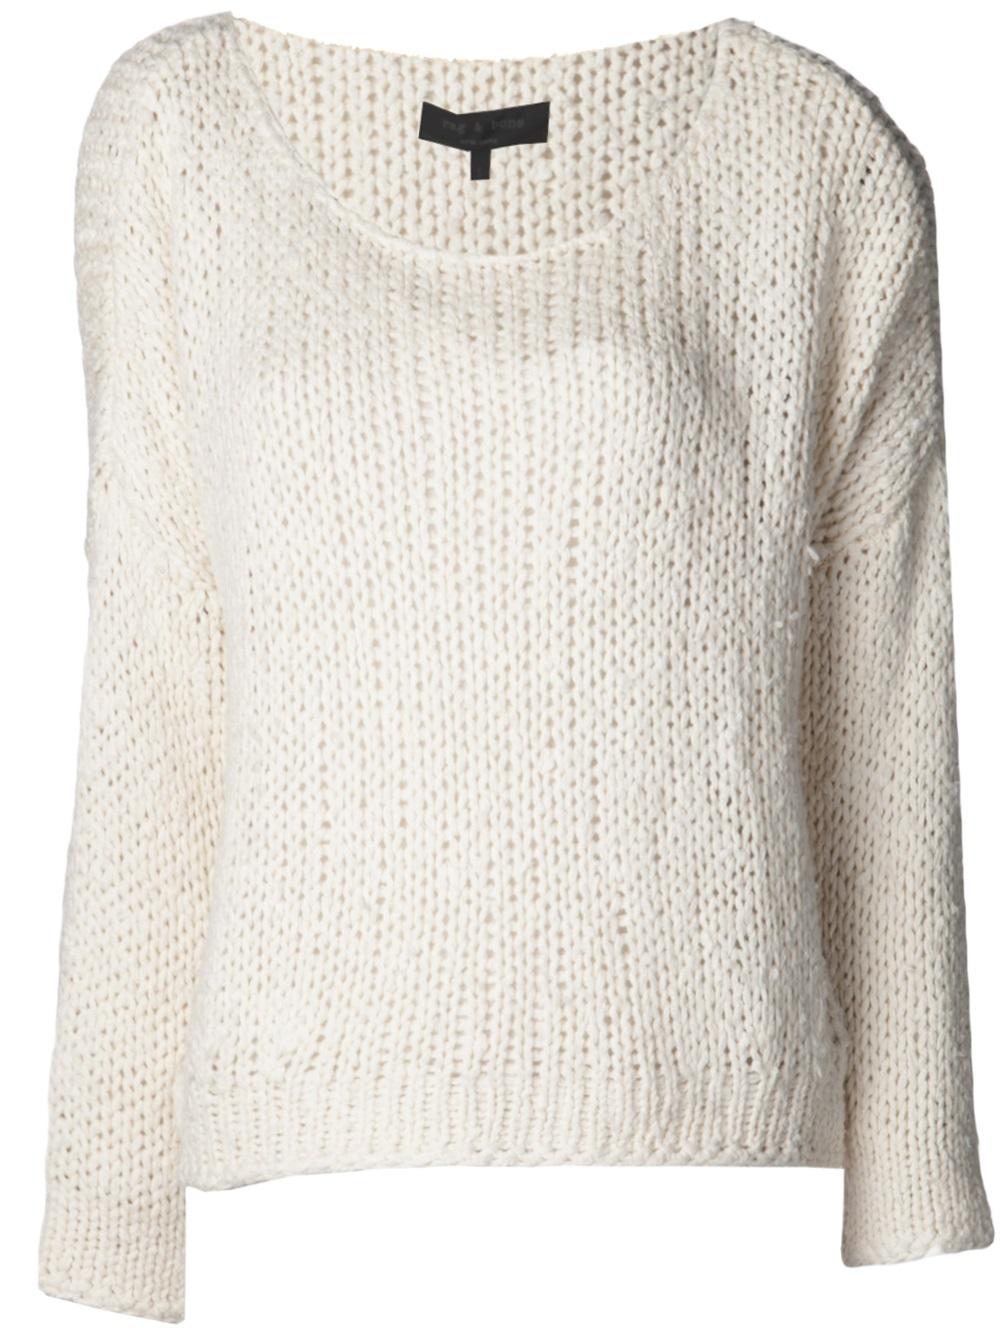 Rag & bone Krista Pullover Sweater in White | Lyst